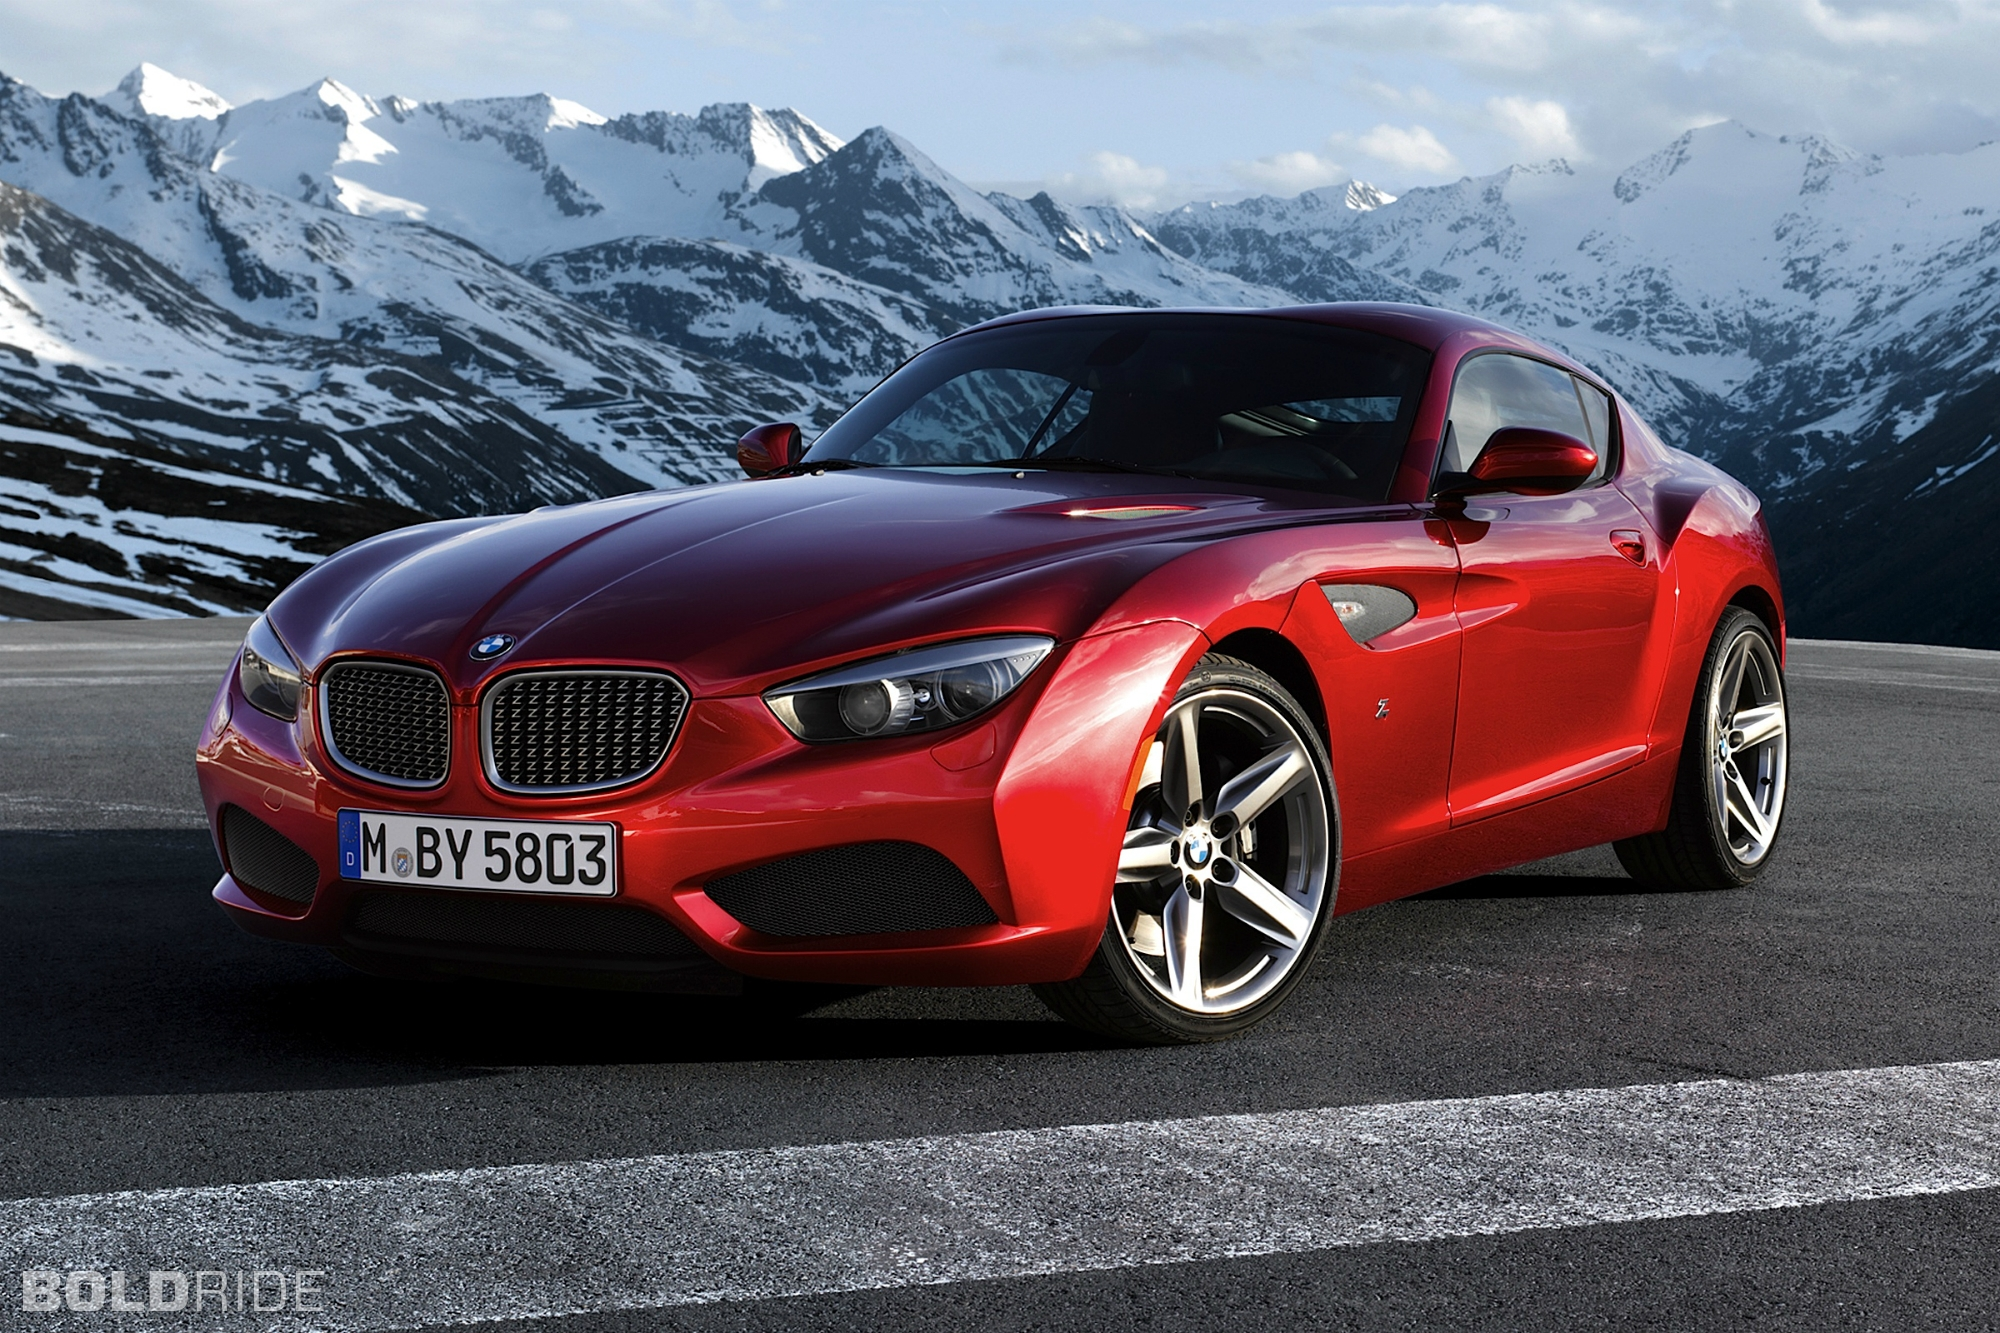 2012 BMW Zagato Coupe 1024 x 770